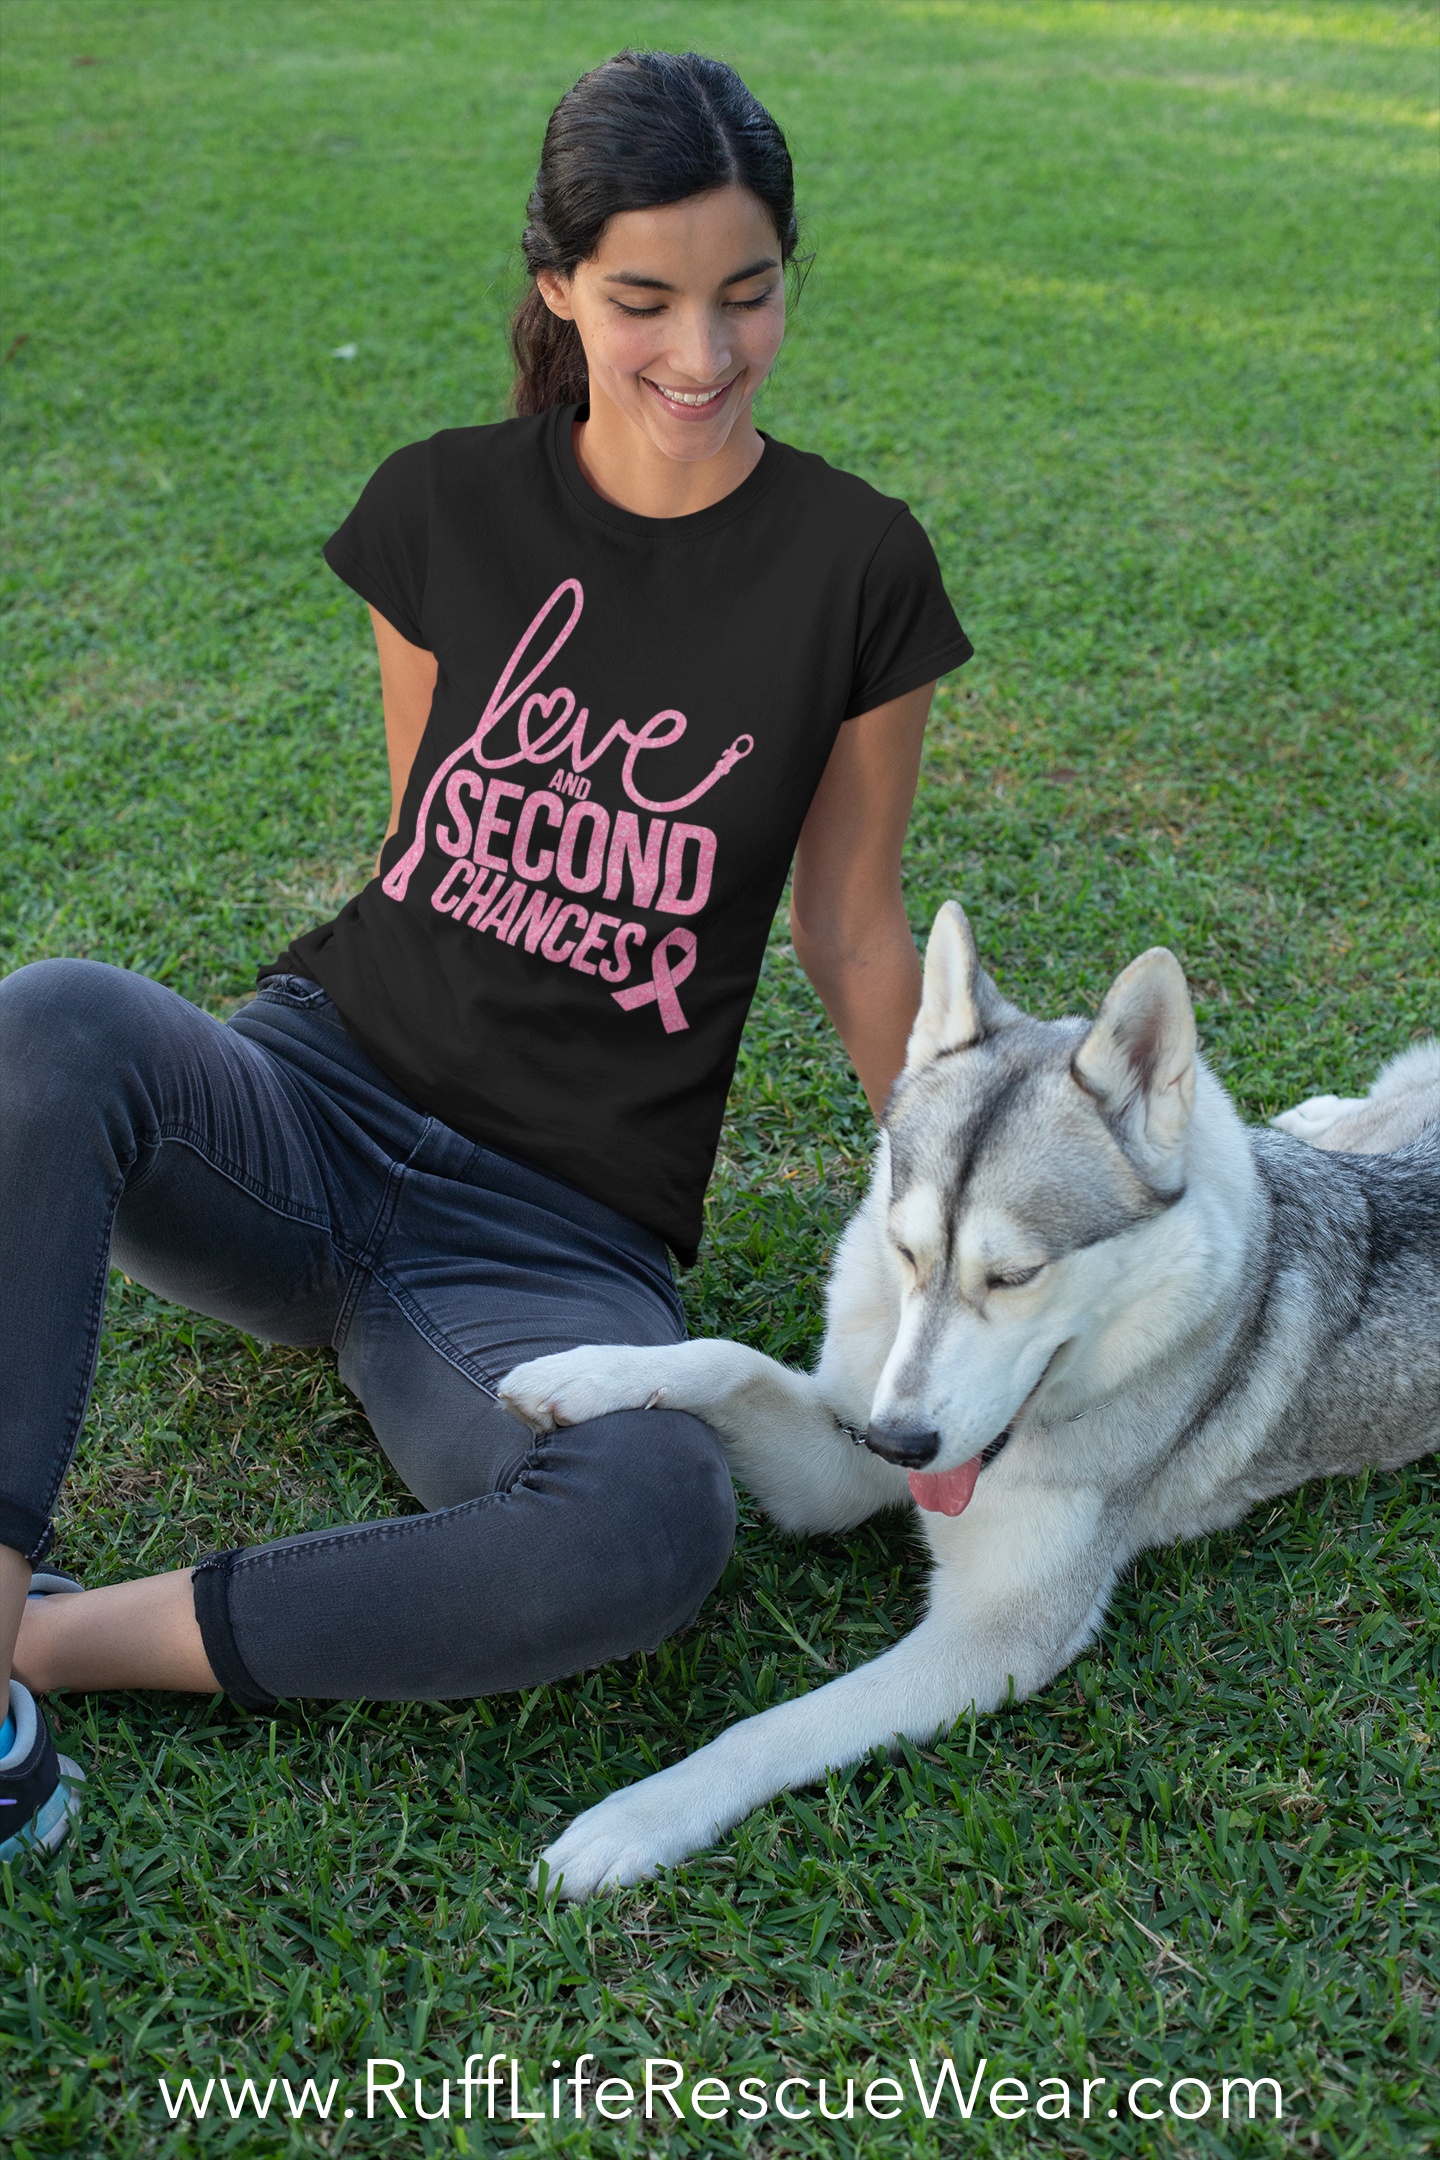 Love and Second Chances Breast Cancer Awareness Ladies Slim Fit Tee - Ruff Life Rescue Wear